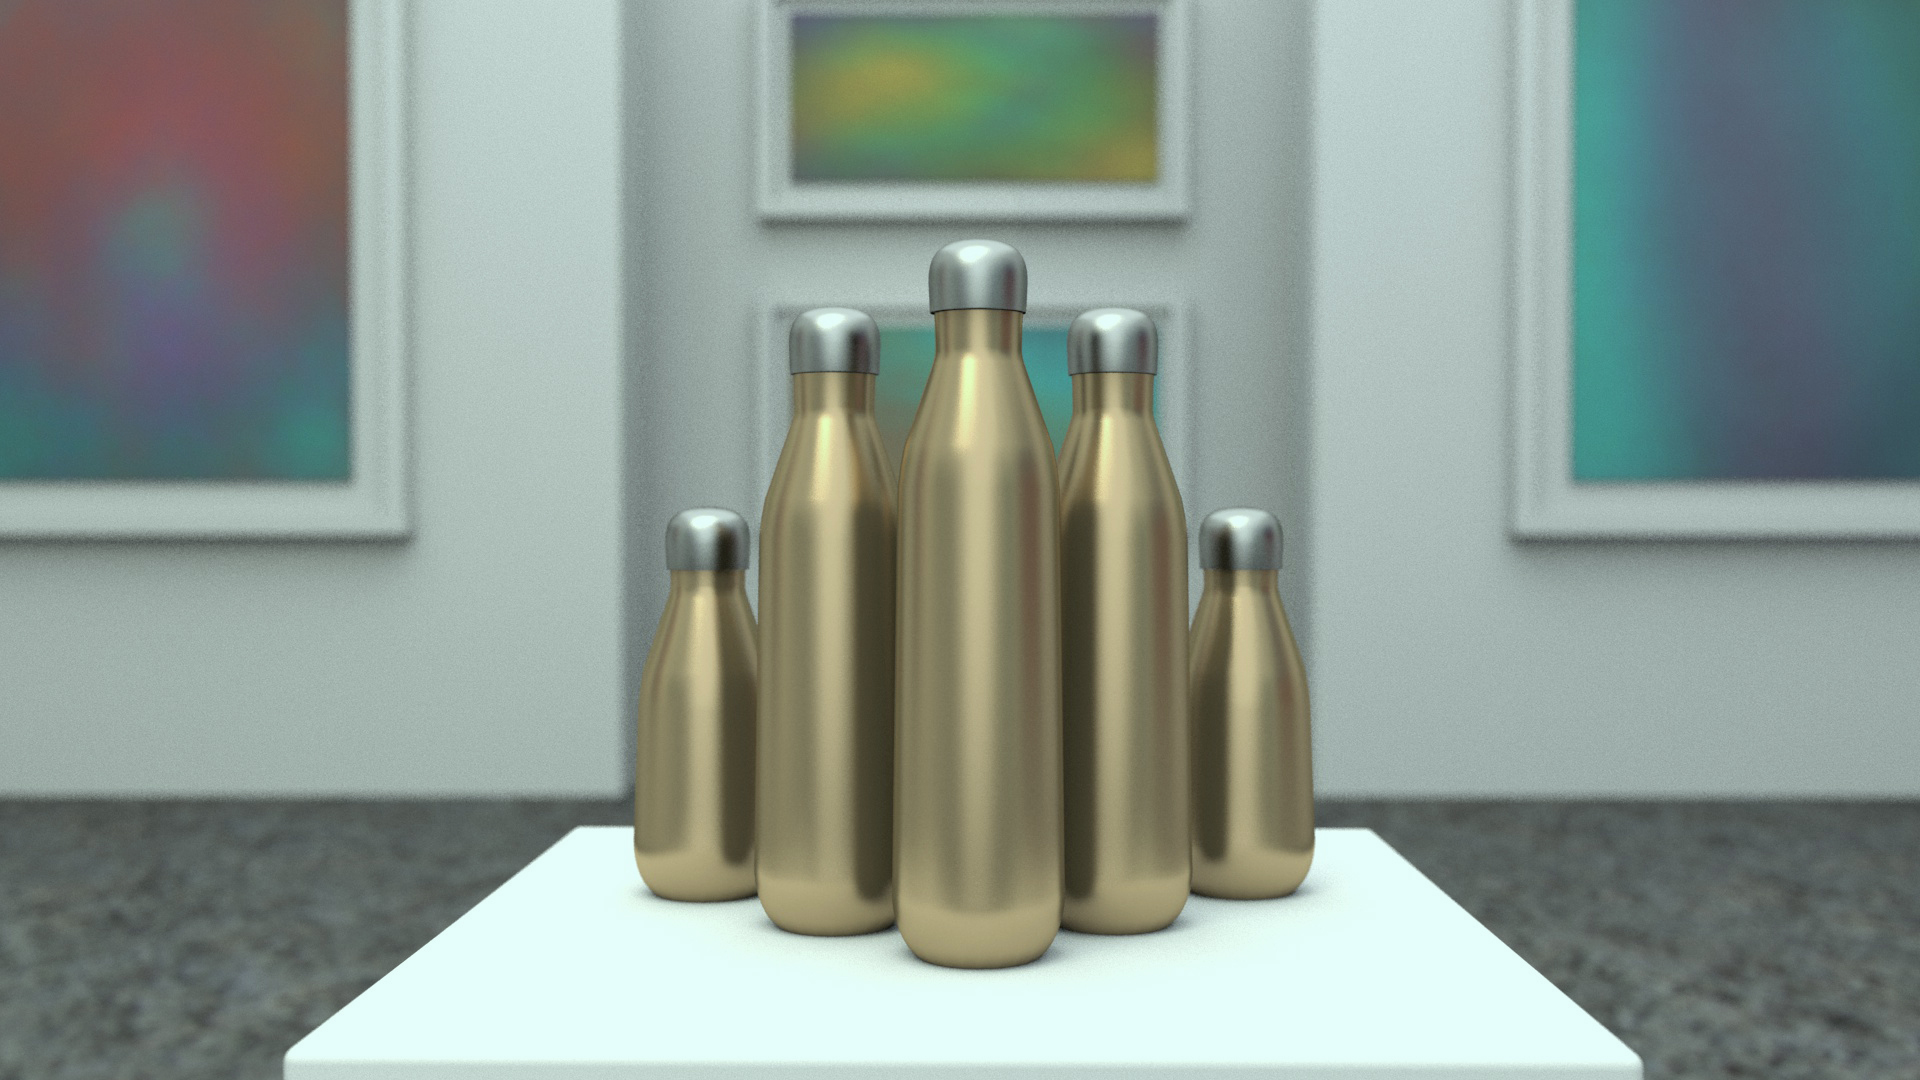 S'well Product Shot Pre-Production 3D Render I created the 3D render of the bottle closeups